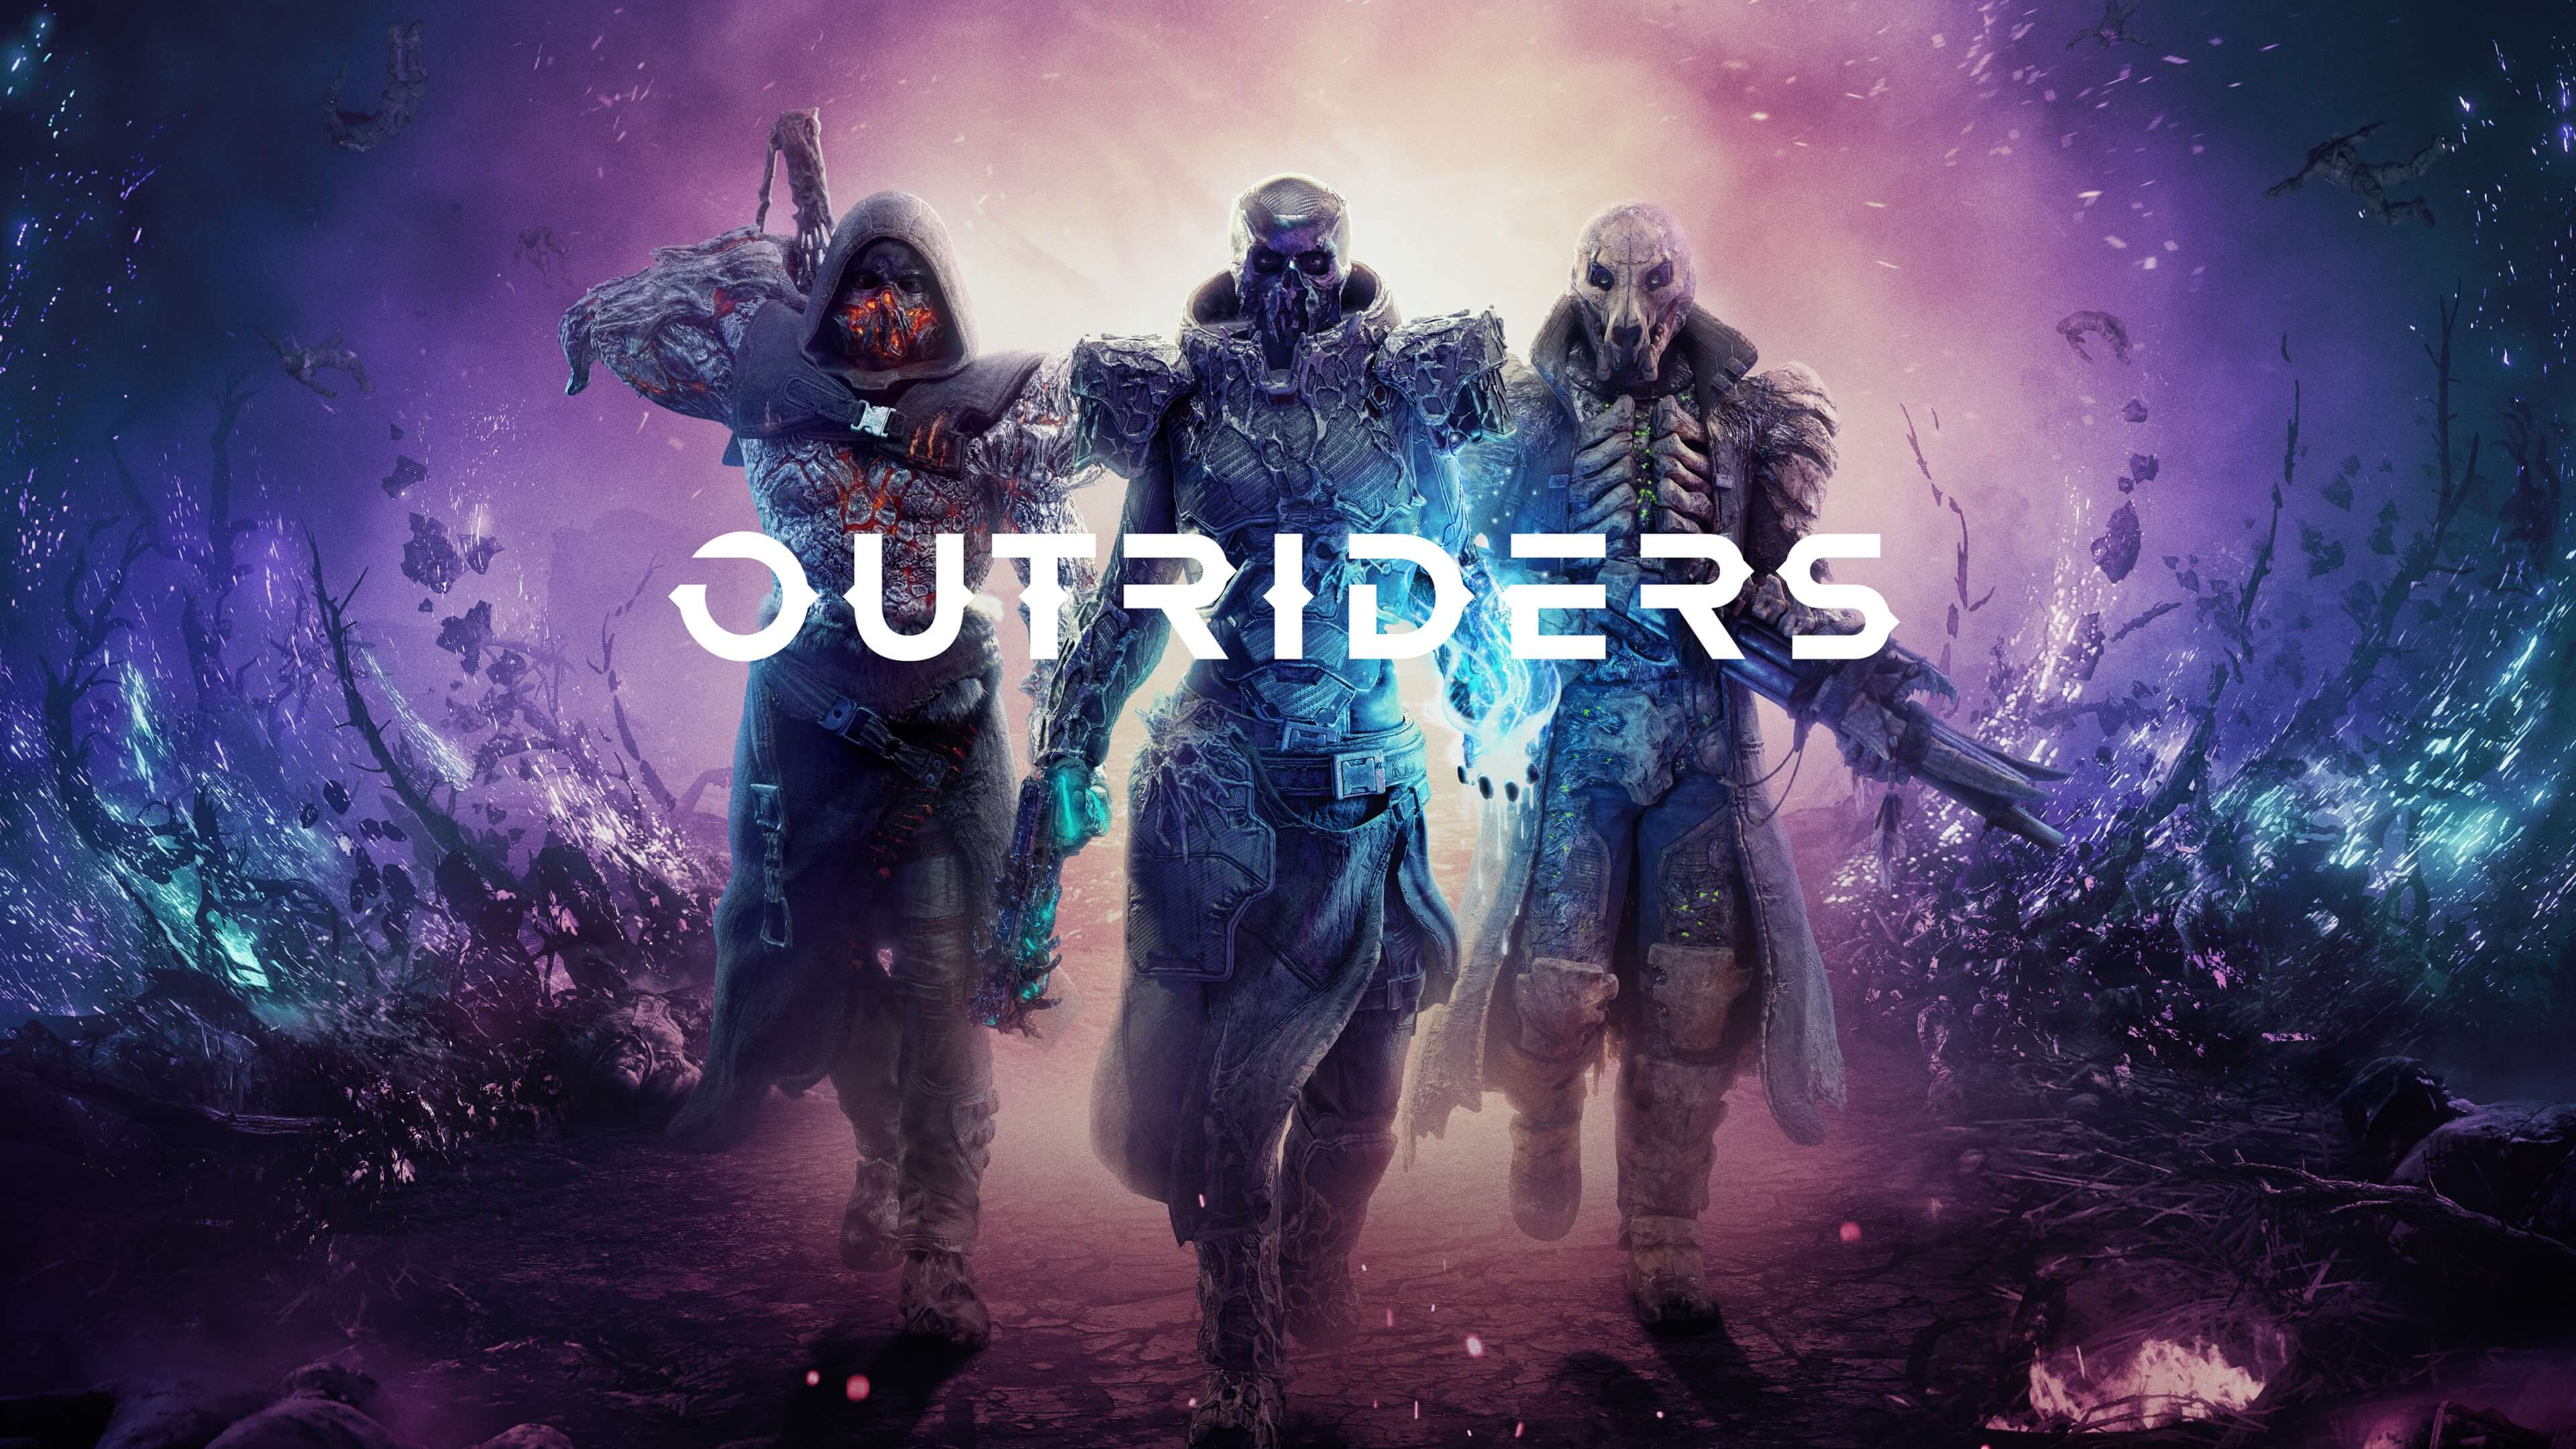 Outriders wallpaper 3840x2160